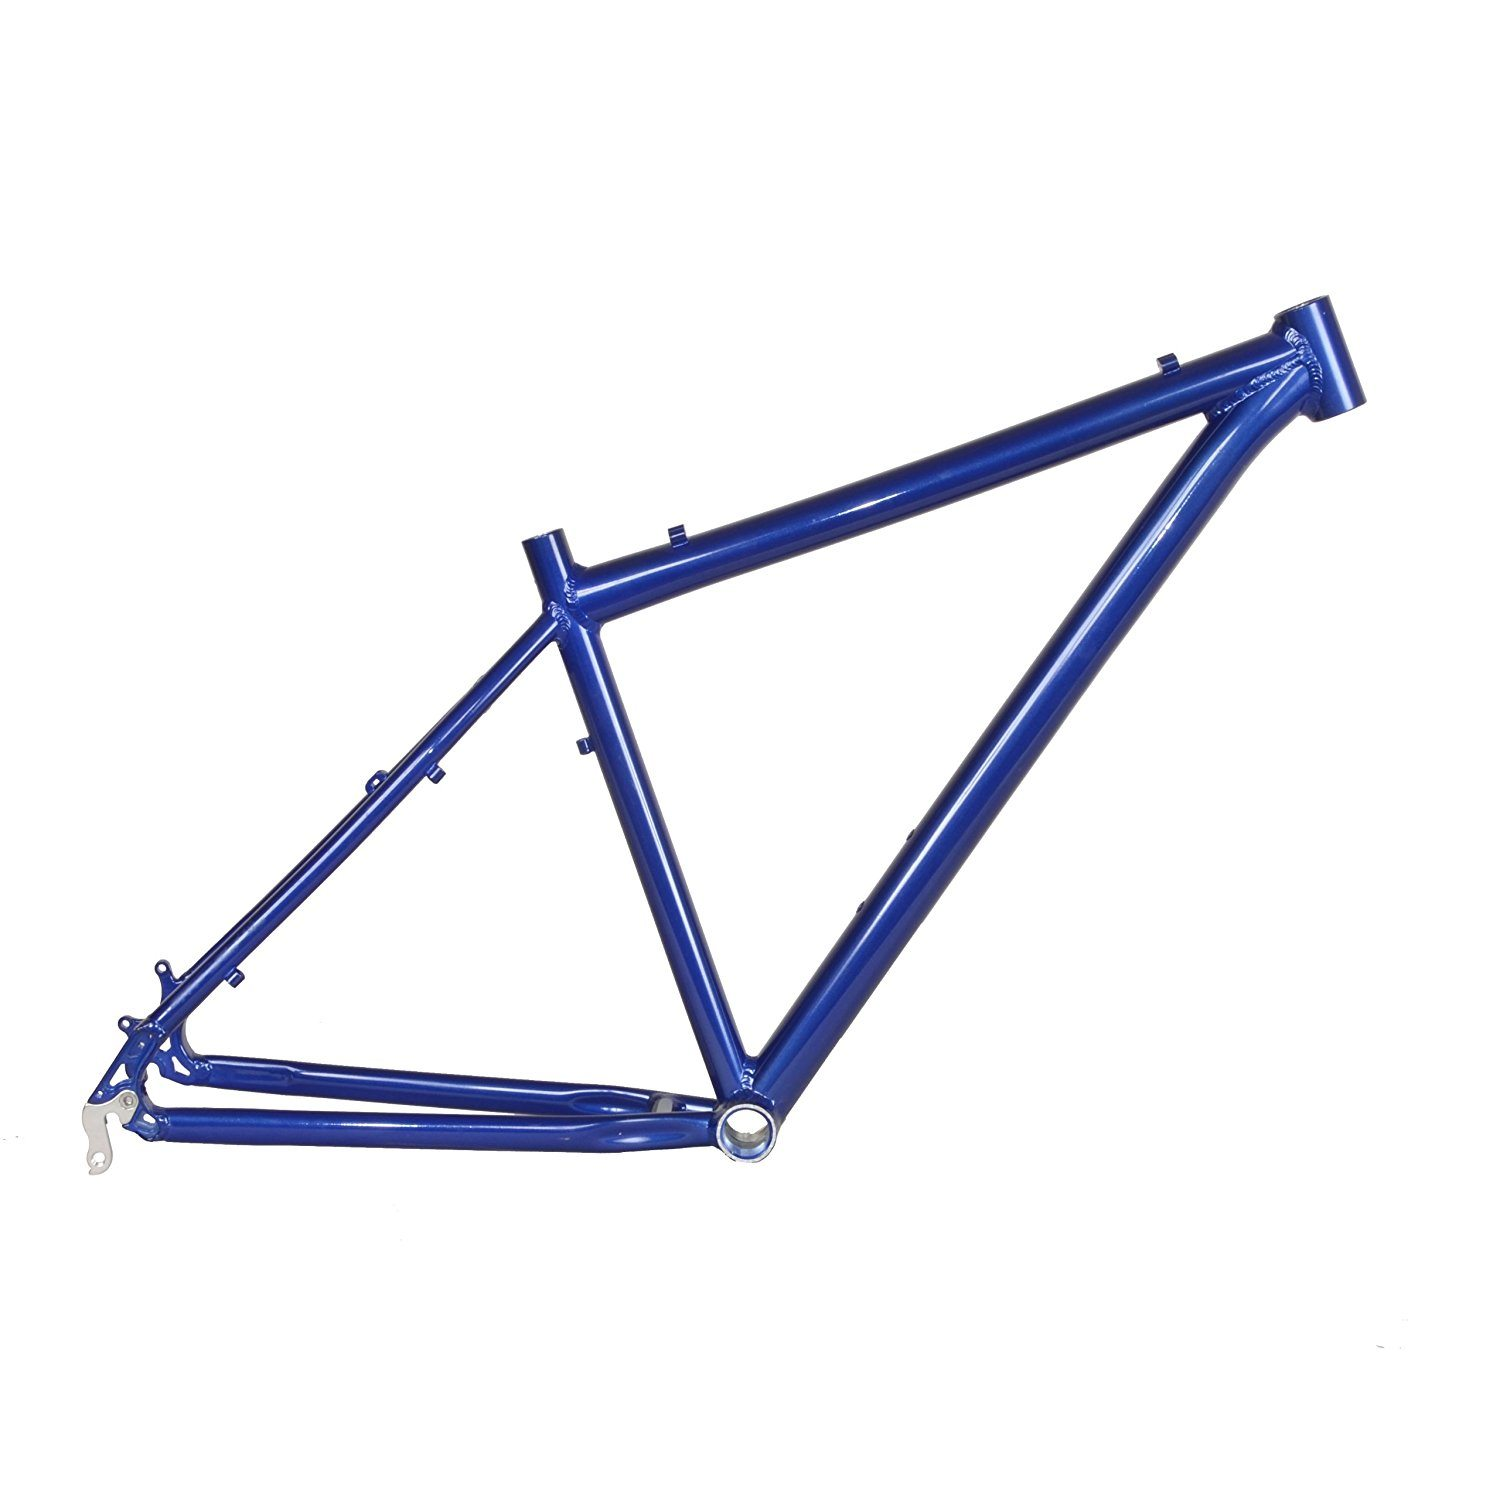 Mountain Bike- Aluminum Frame